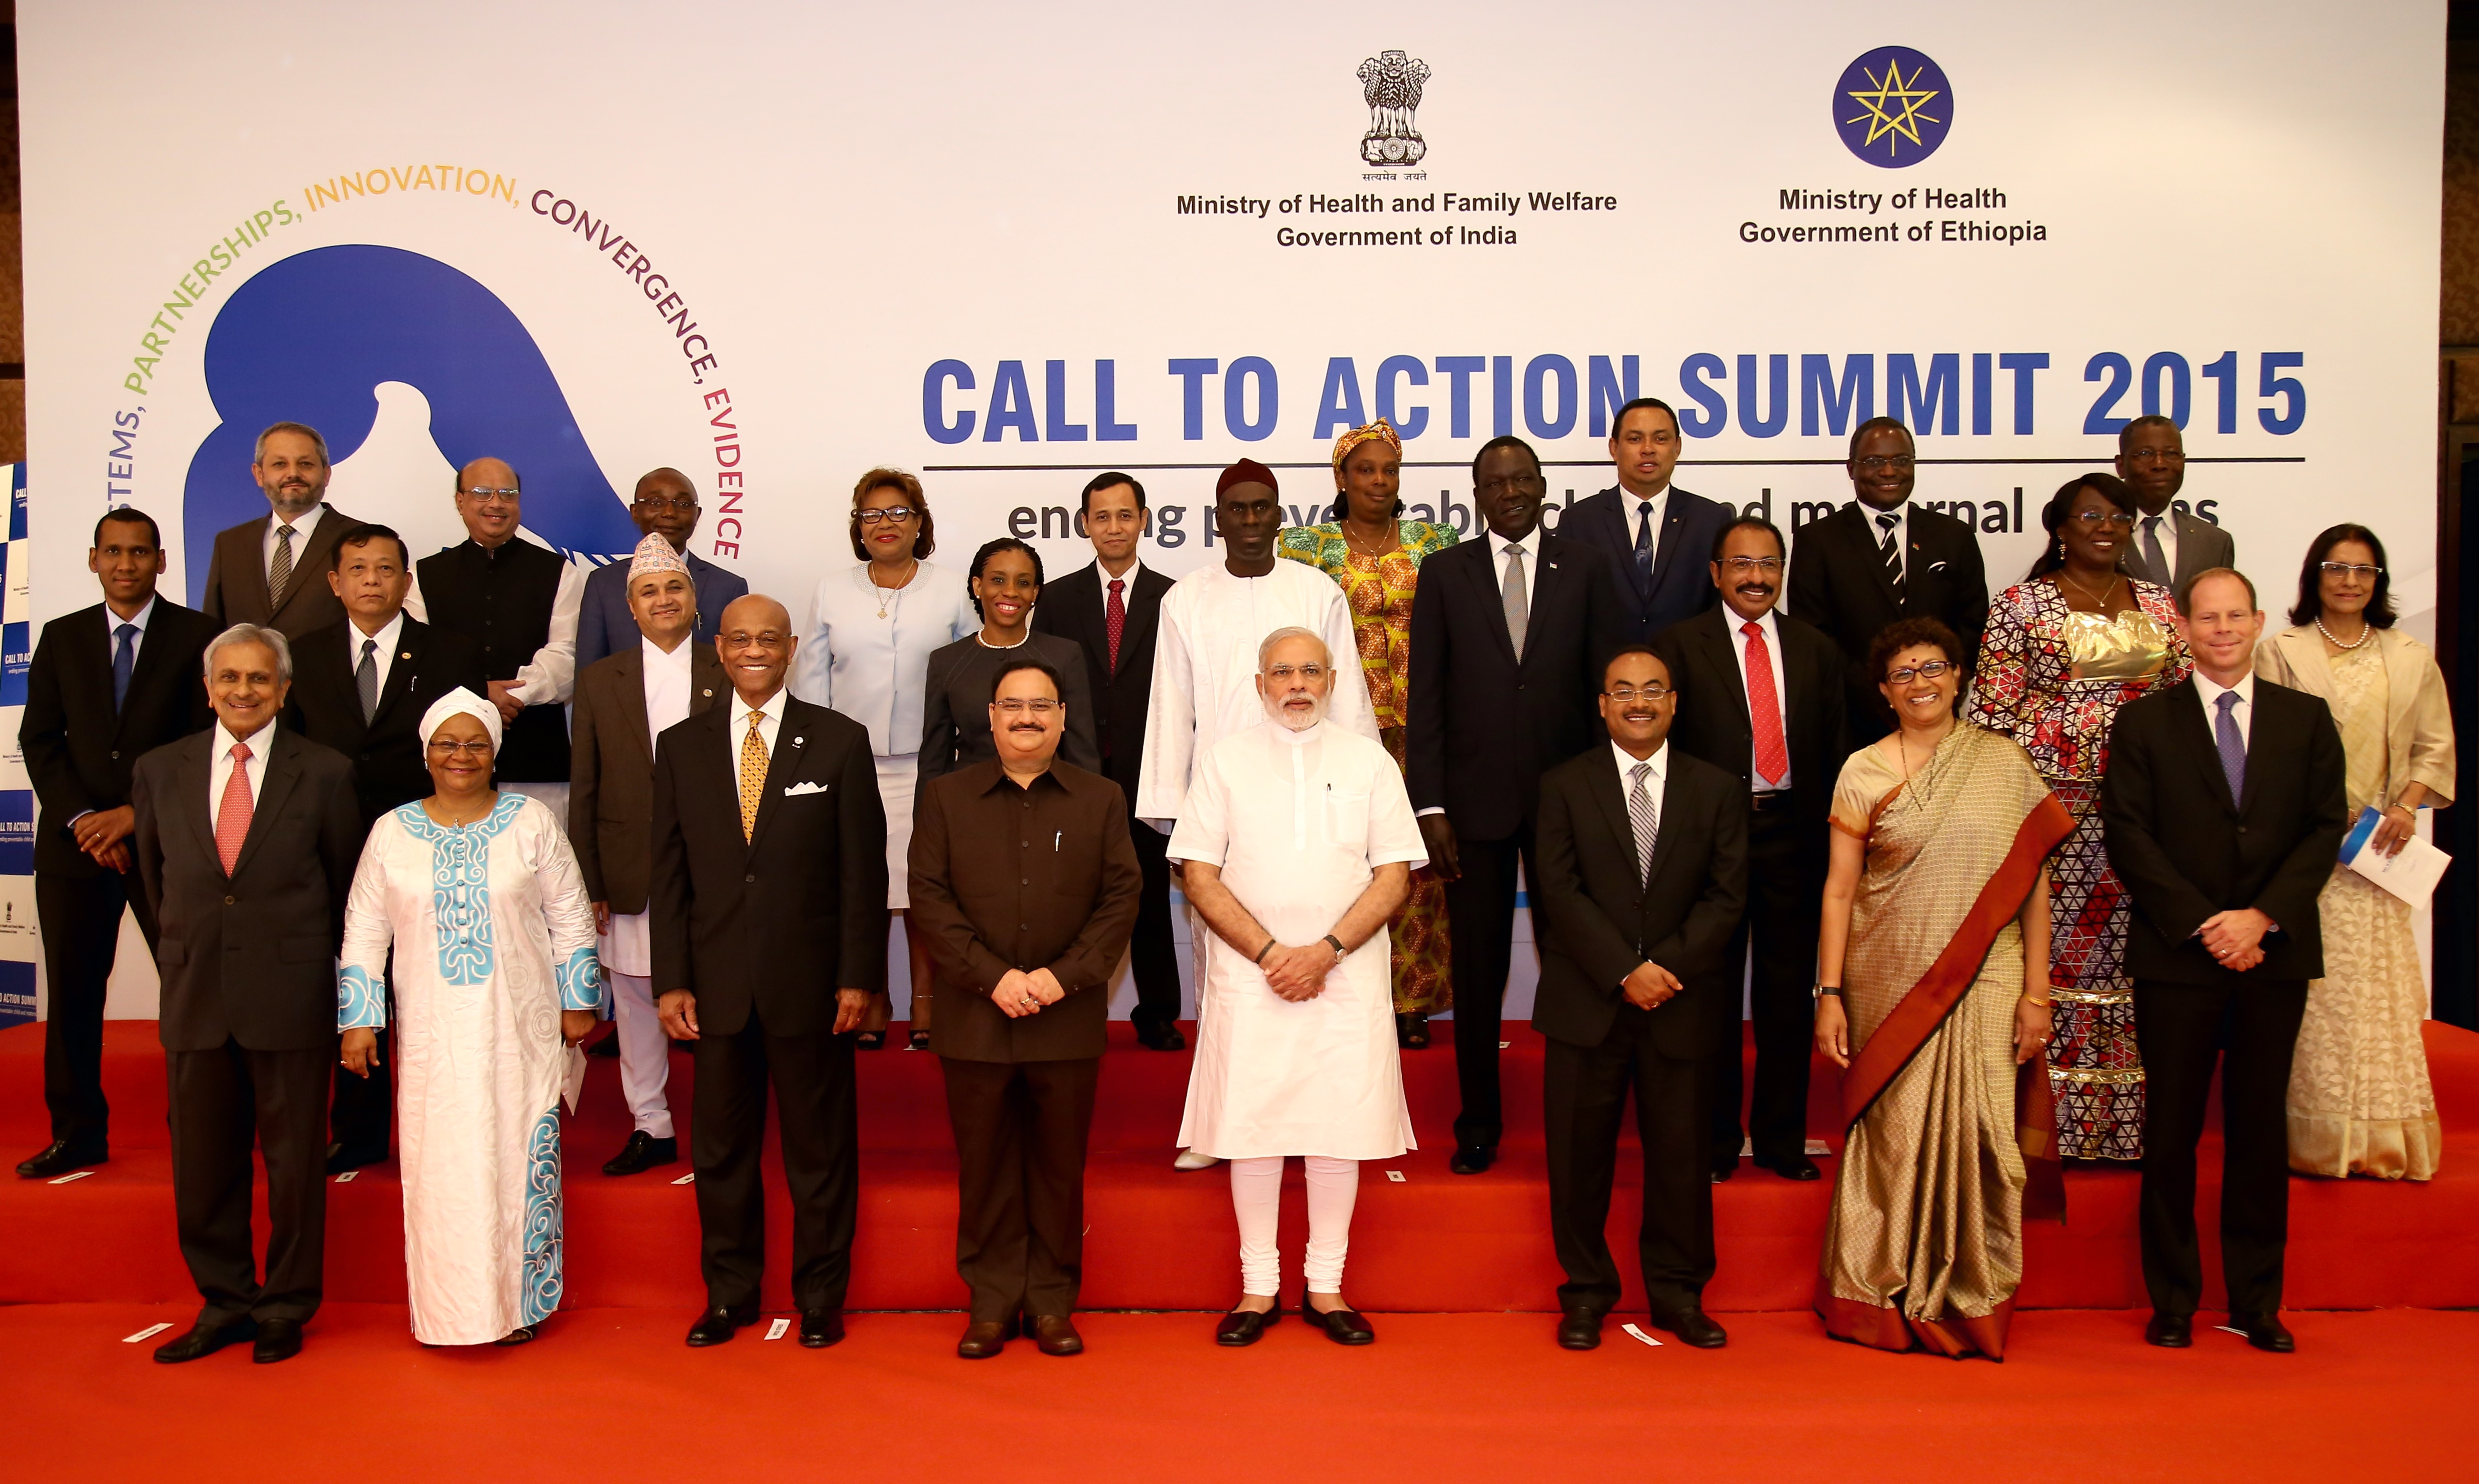 Acting USAID Administrator Alfonso Lenhardt joins Indian Prime Minister Shri Narendra Modi and heads of delegations from around the world at the Call to Action Summit on Aug. 27 in New Delhi, India. / Clay Doherty, USAID